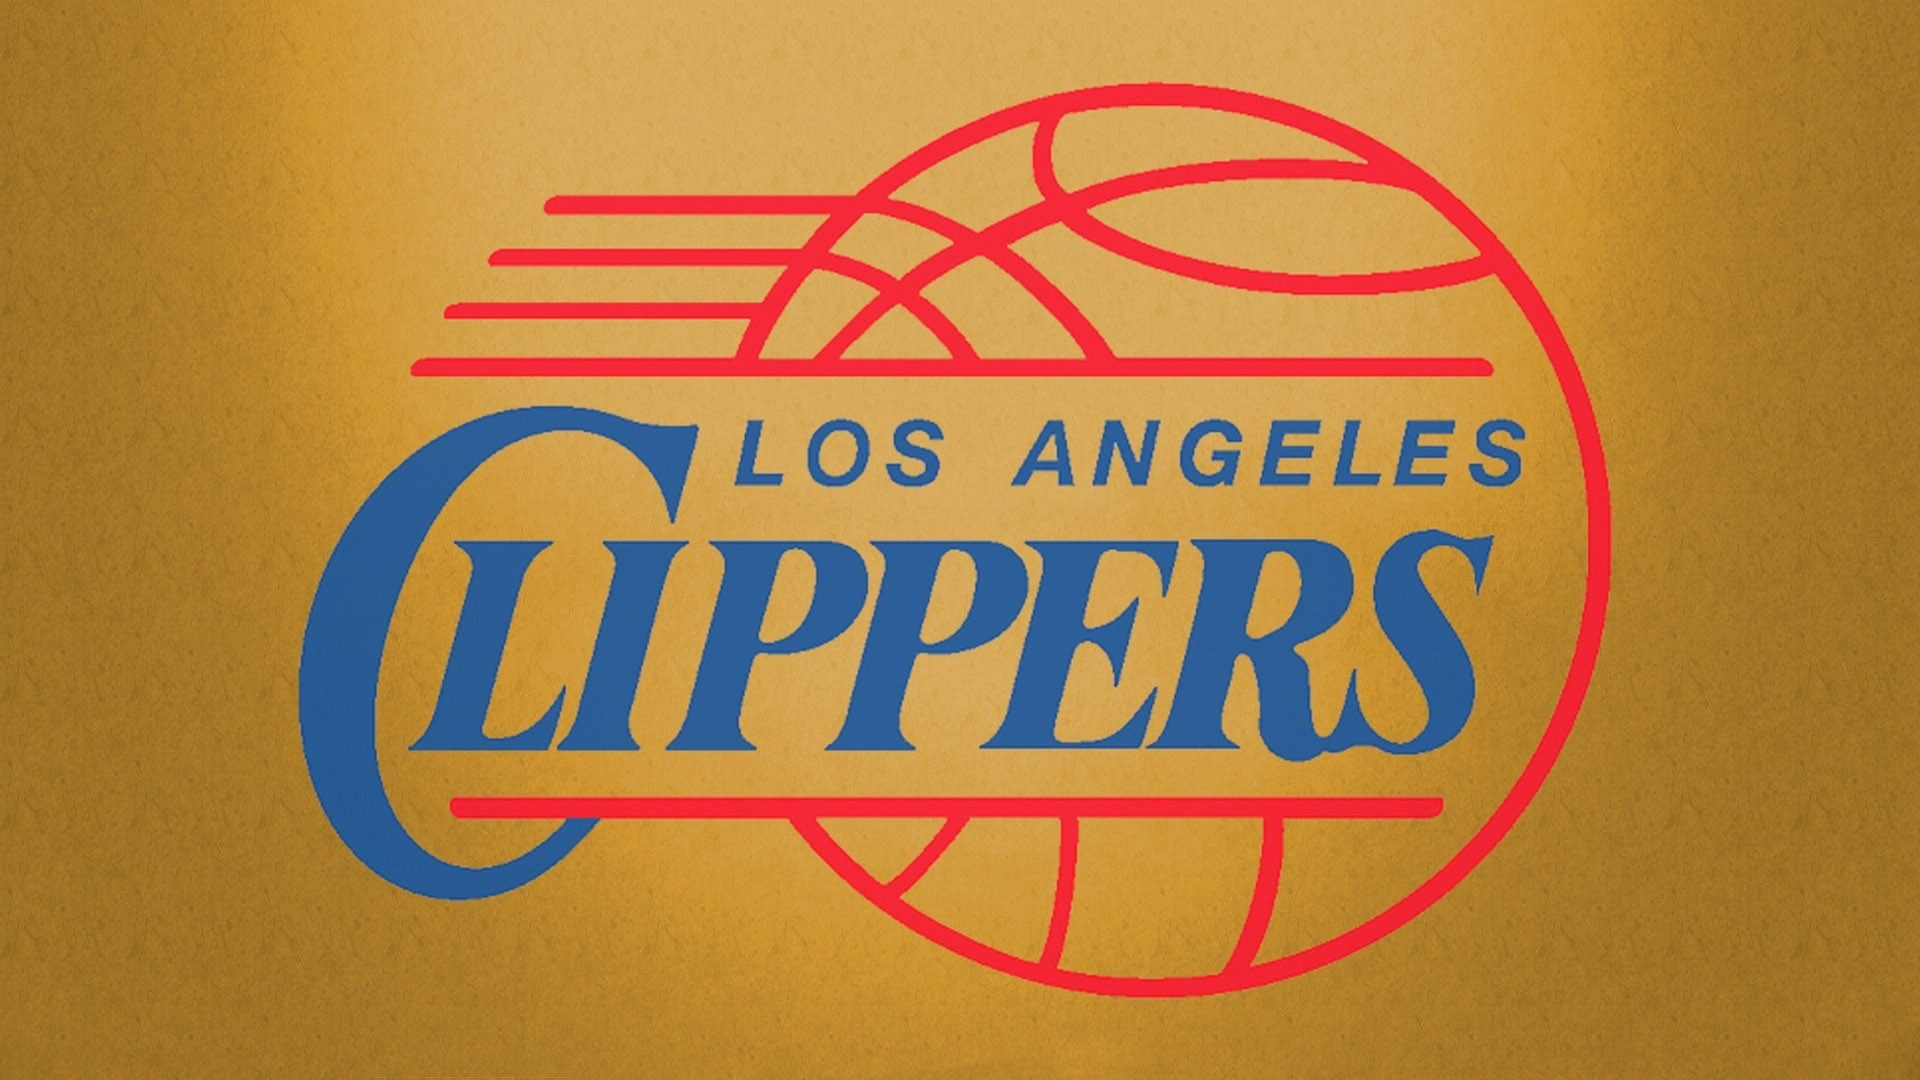 Los Angeles Clippers Image